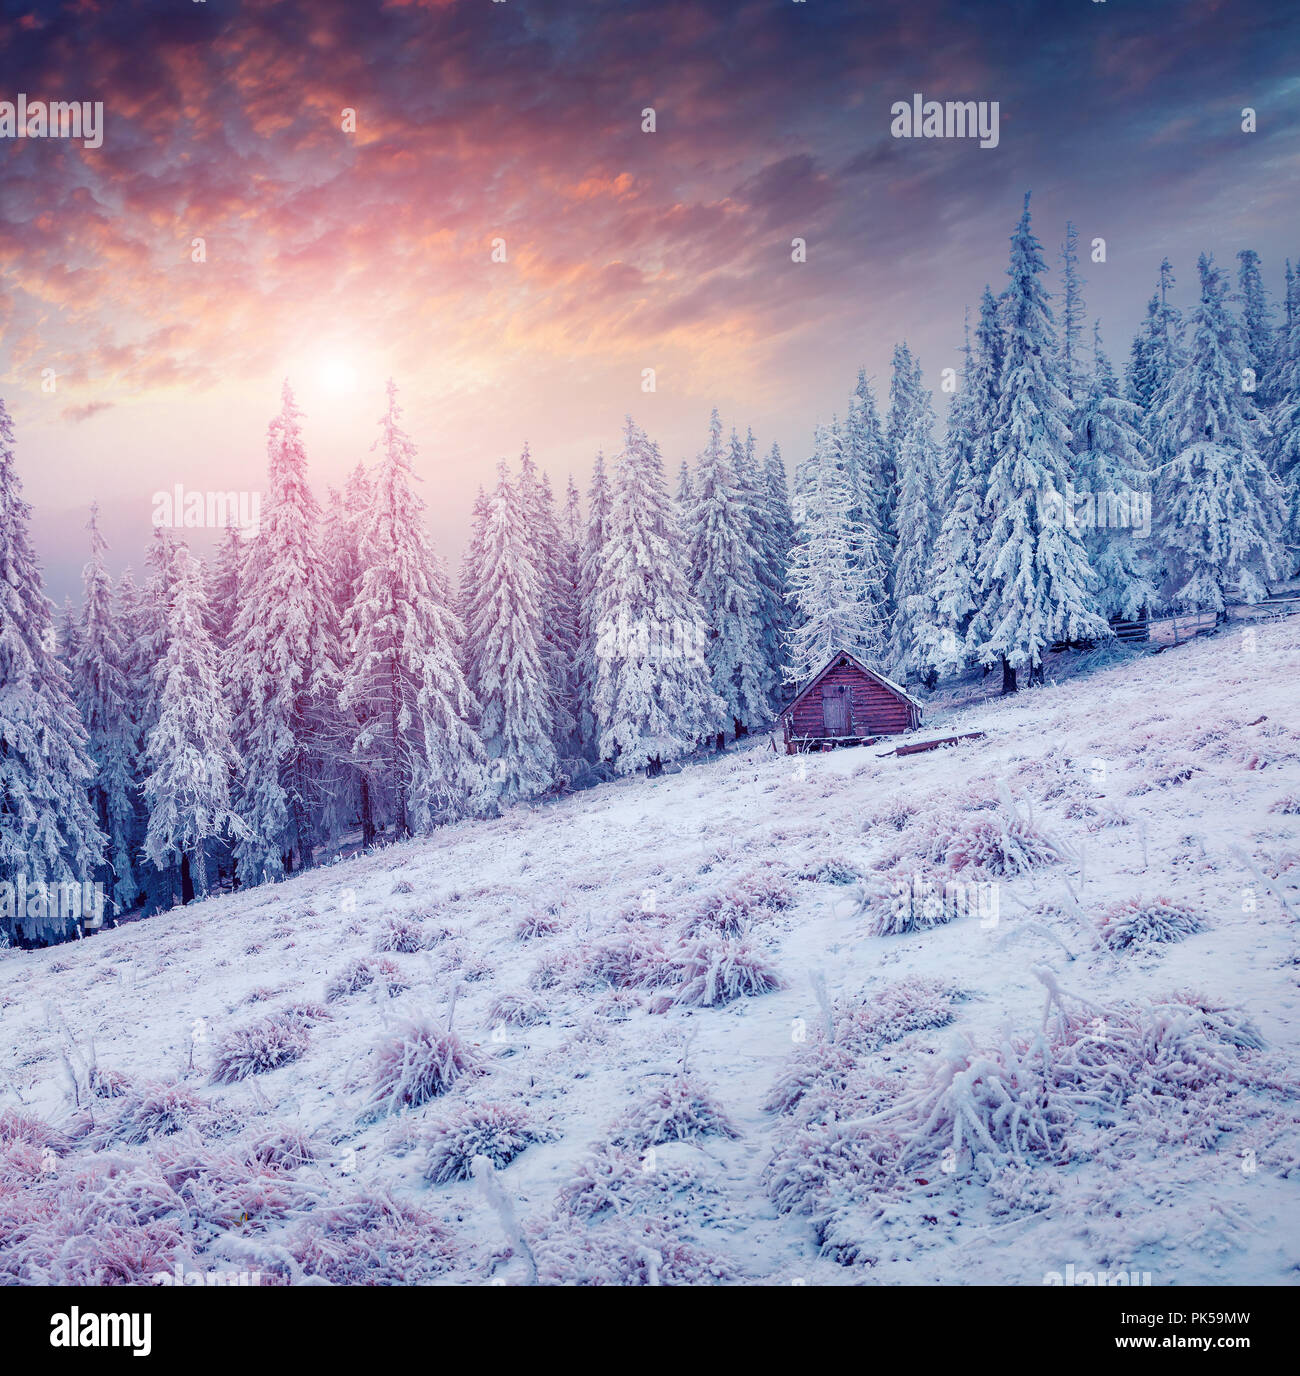 Colorful winter scene in the Carpathian mountains. Fir trees covered fresh snow at sunrise. Stock Photo